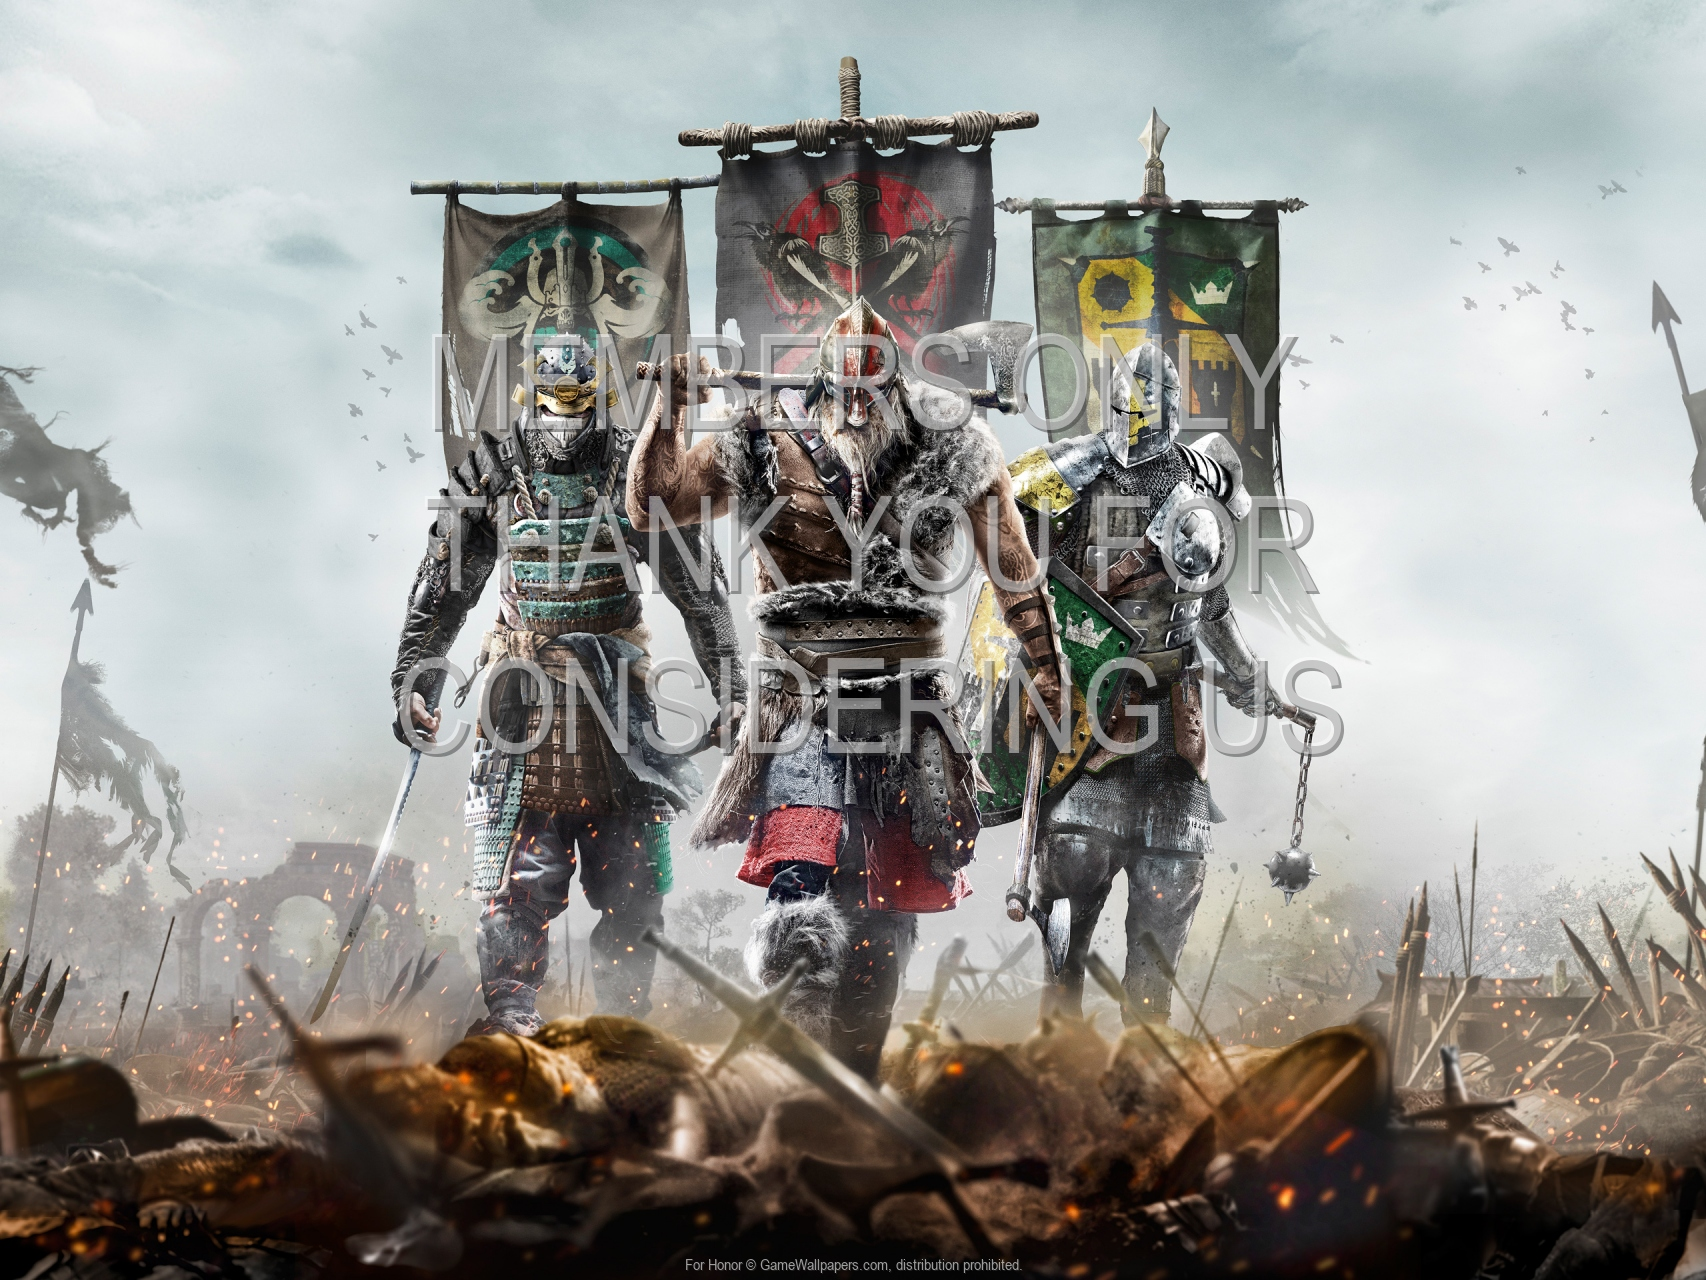 For Honor 1920x1080 Mobile fond d'écran 01